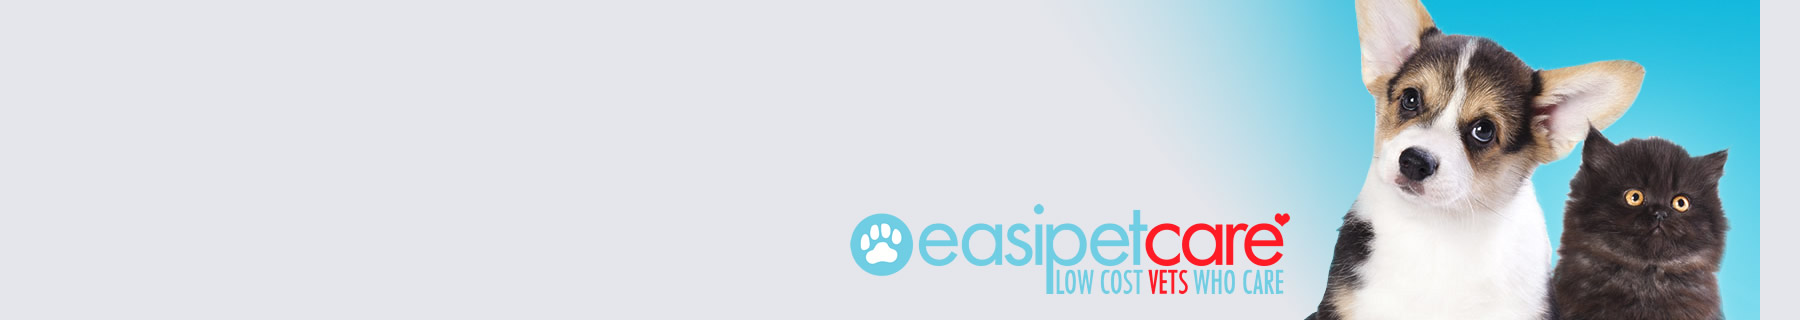 Surgery Connect provides easipetcare with a clear picture of their call volumes and call handling capabilities